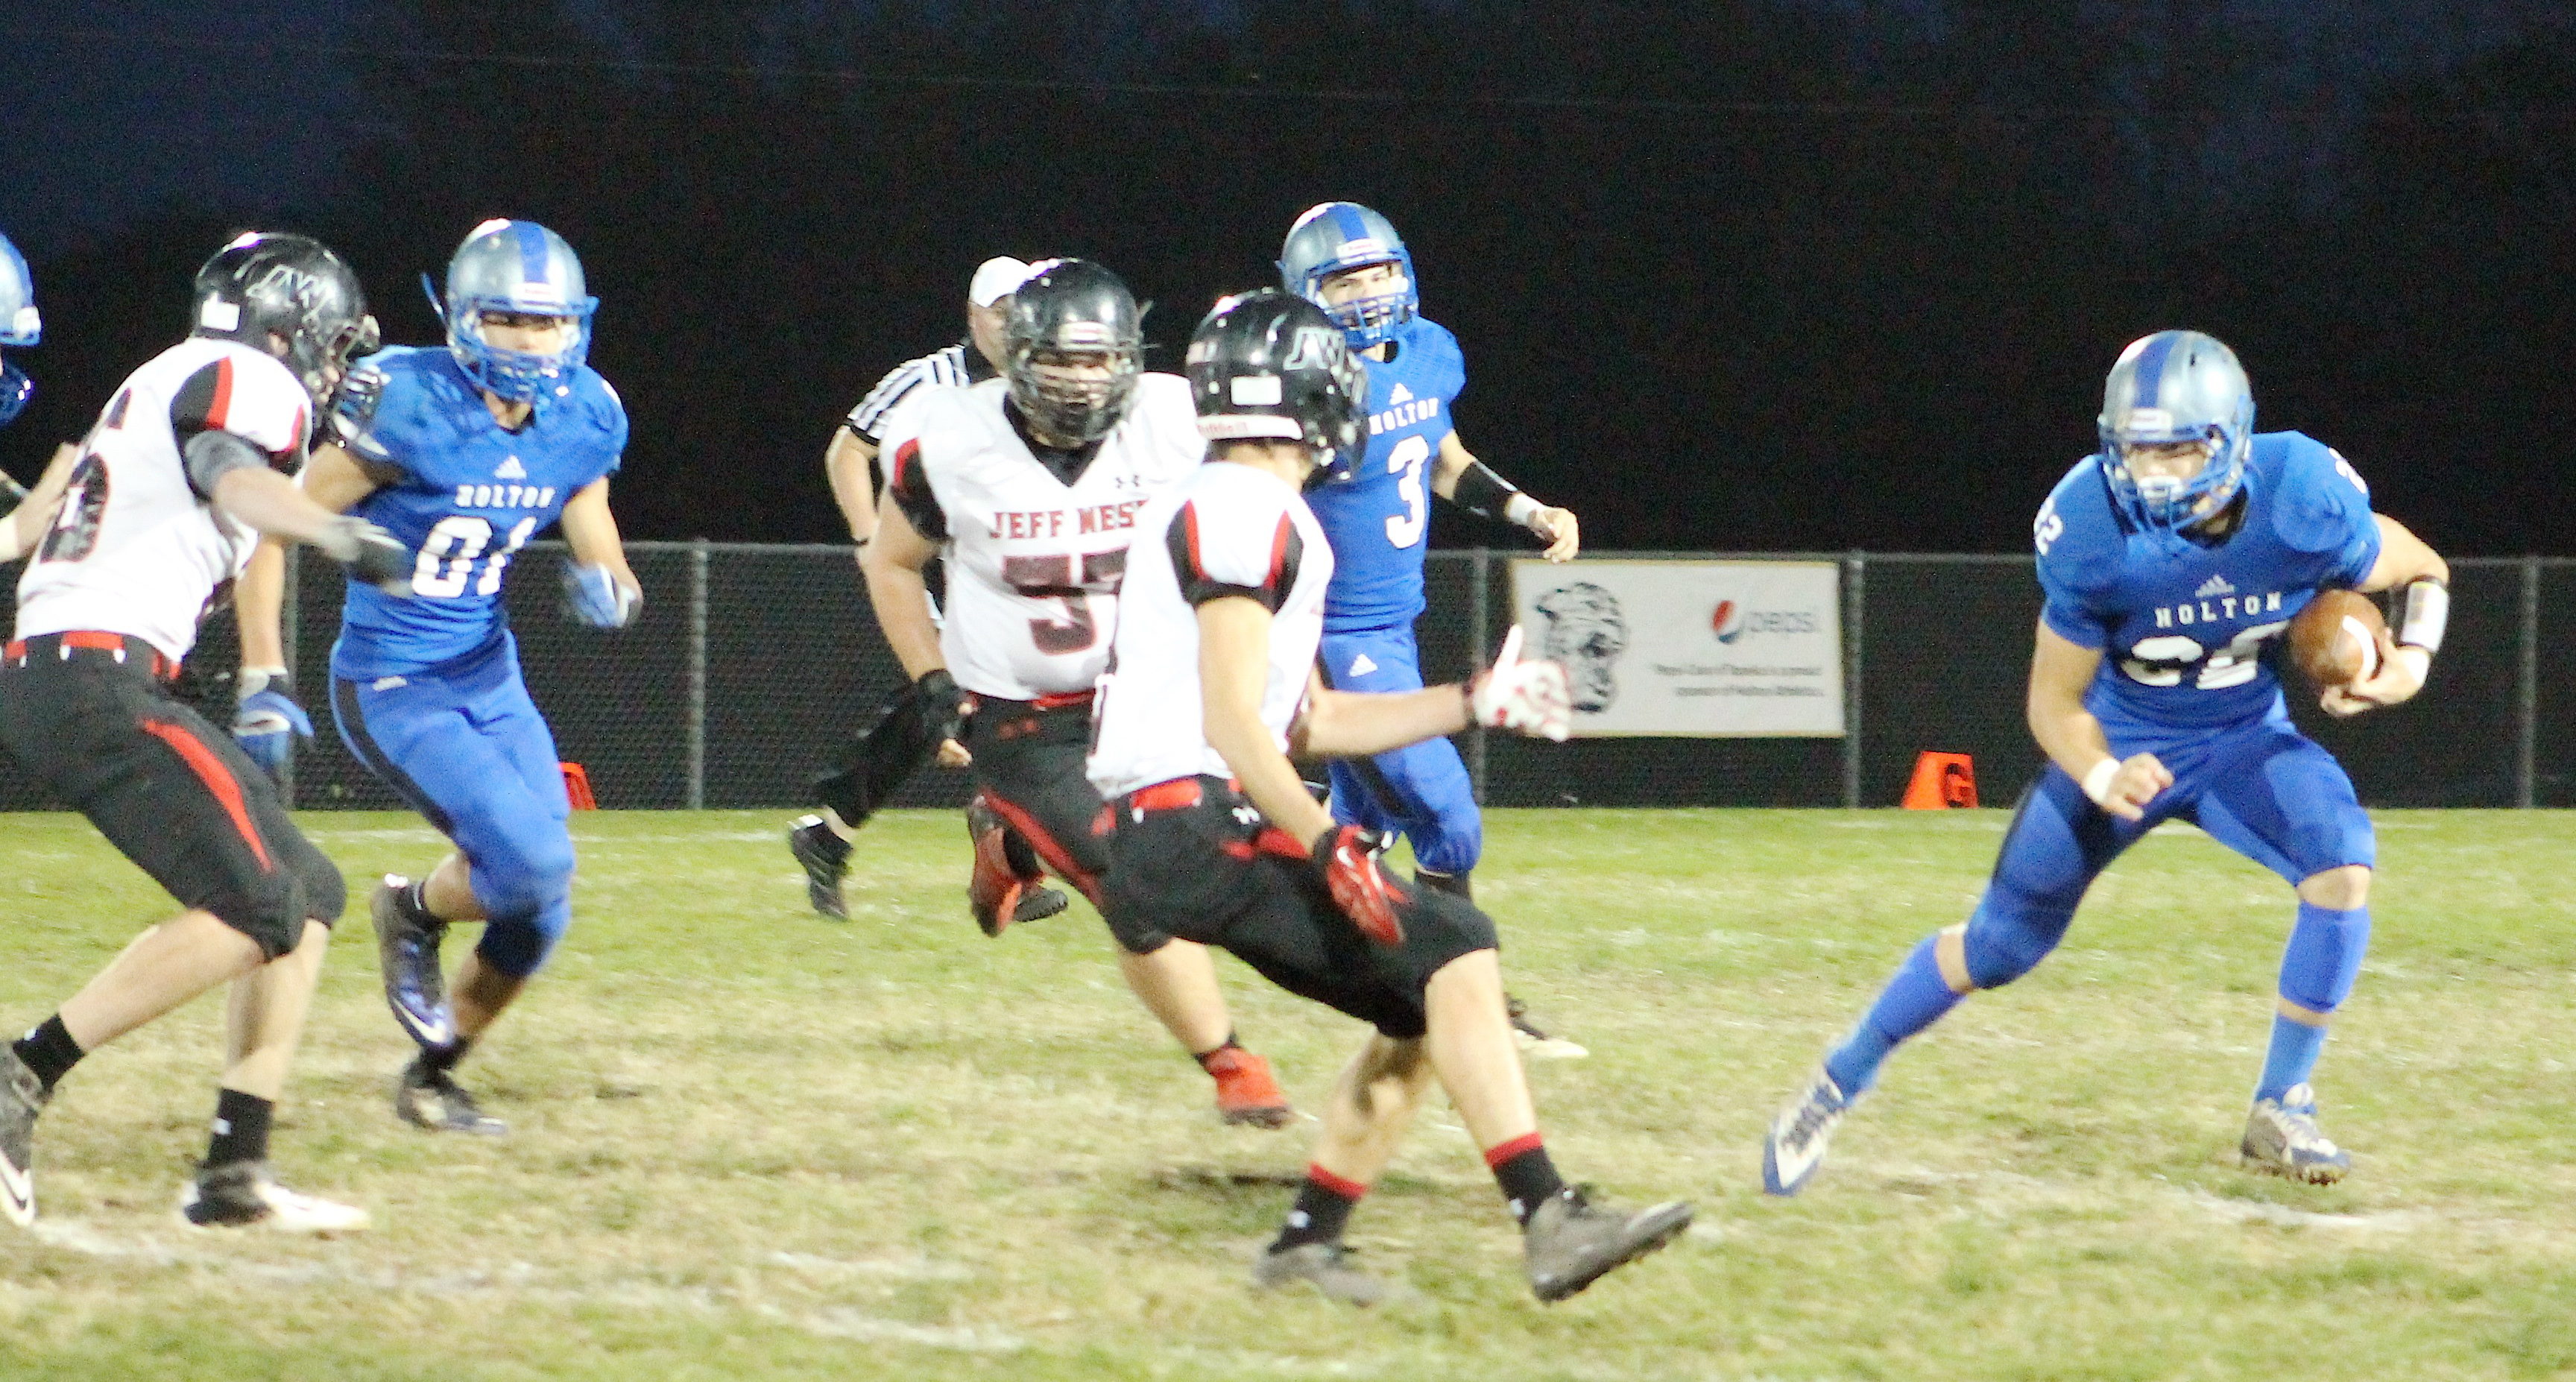 Indie Allen (right) tries to cut to the outside for more running room early in Friday's game.